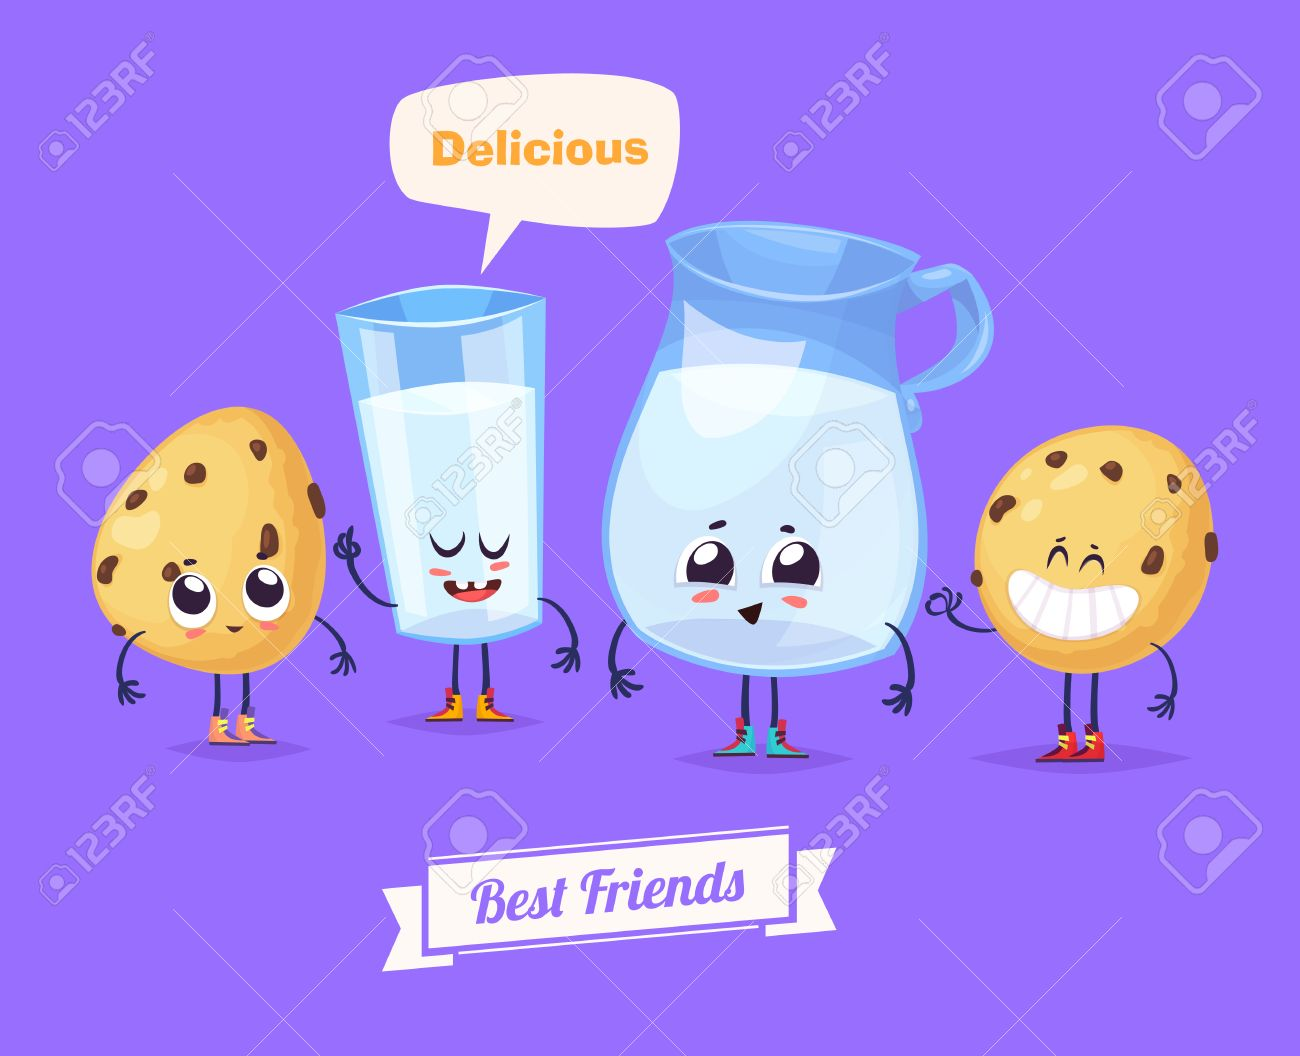 Best friends. Funny characters milk and cookies. Funny food. - 52177703